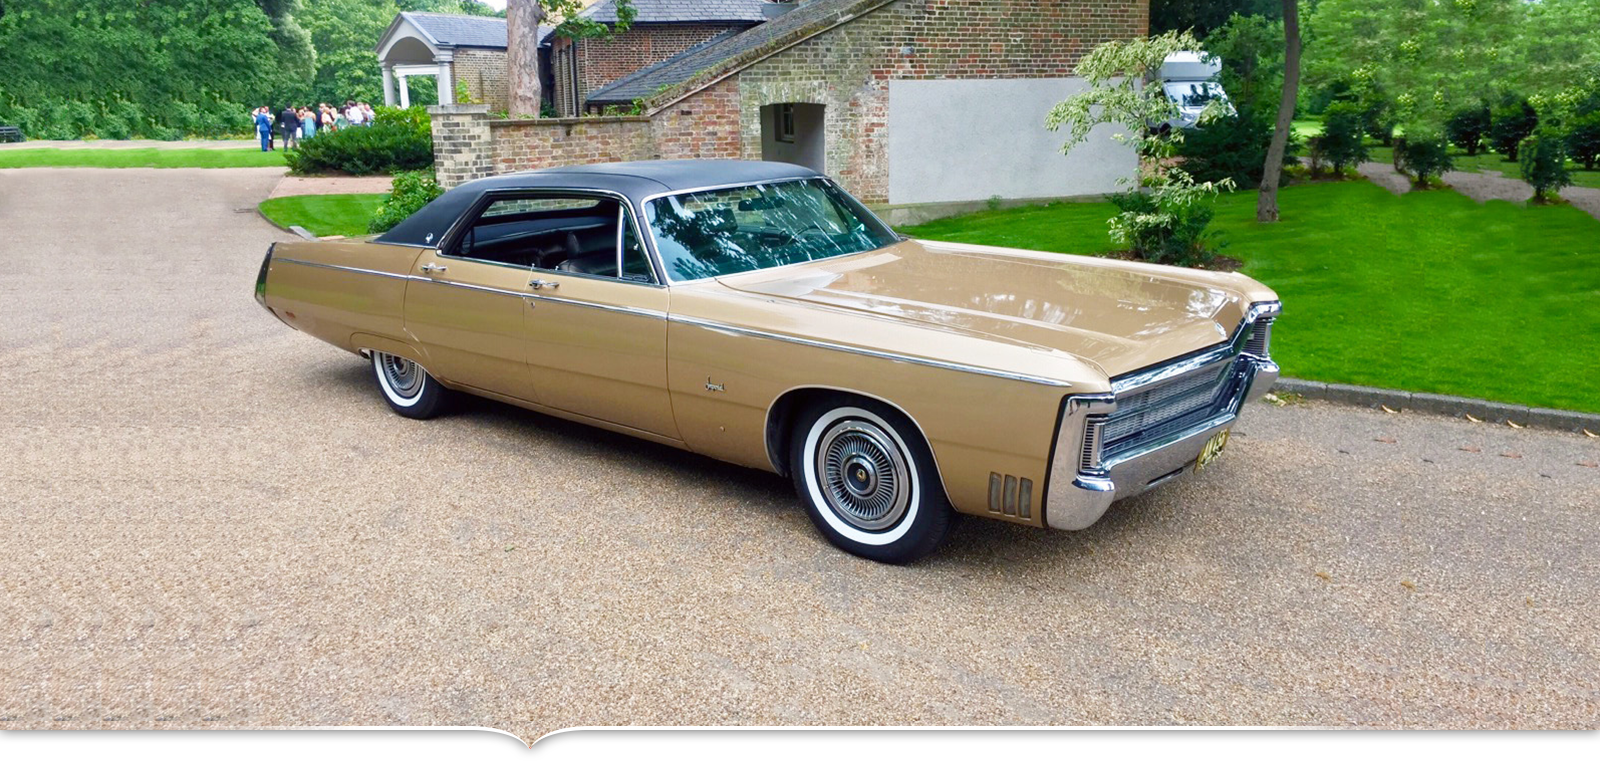 1969 Chrysler Imperial Le Baron